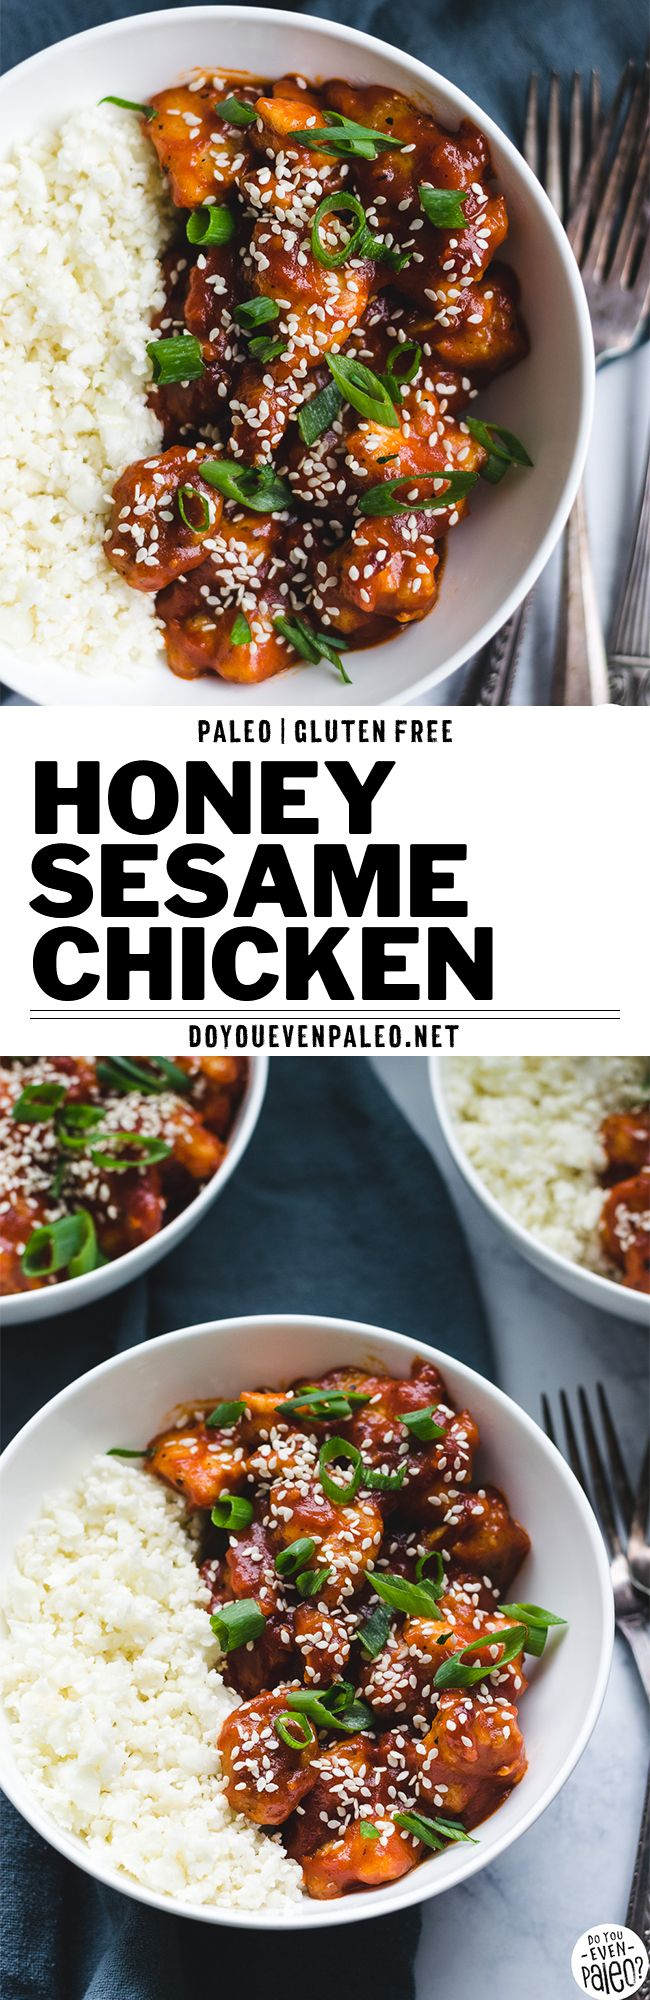 Your new healthy dinner recipe go-to! This paleo honey sesame chicken is an easy, quick gluten free dinner recipe. Plus, it's a paleo recipe. Quick and easy - serve with cauliflower rice or white rice to make it a full meal. | DoYouEvenPaleo.net #glutenfree #paleo